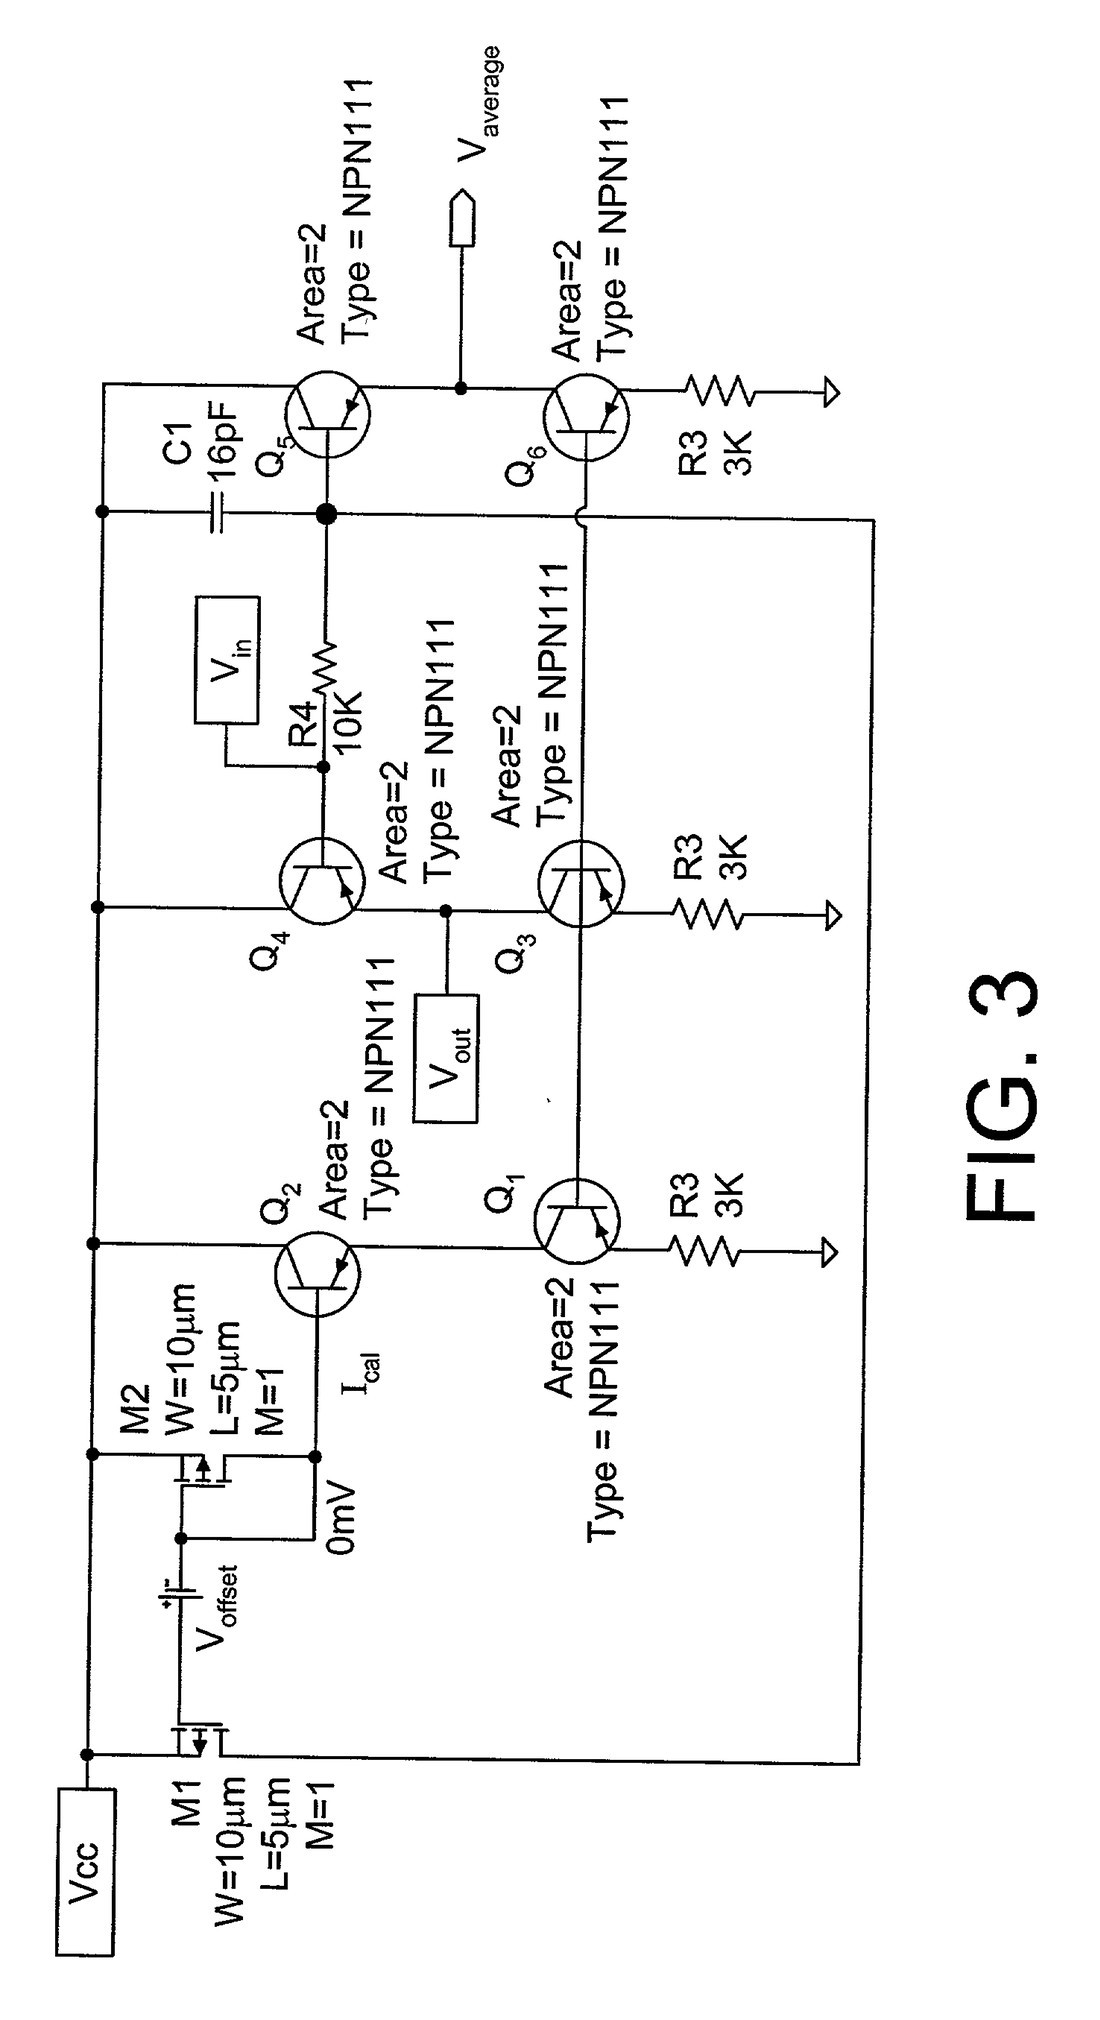 Solar Garden Light Circuits Diagram Wiring Image Circuit For Led Ac Filter Ponents